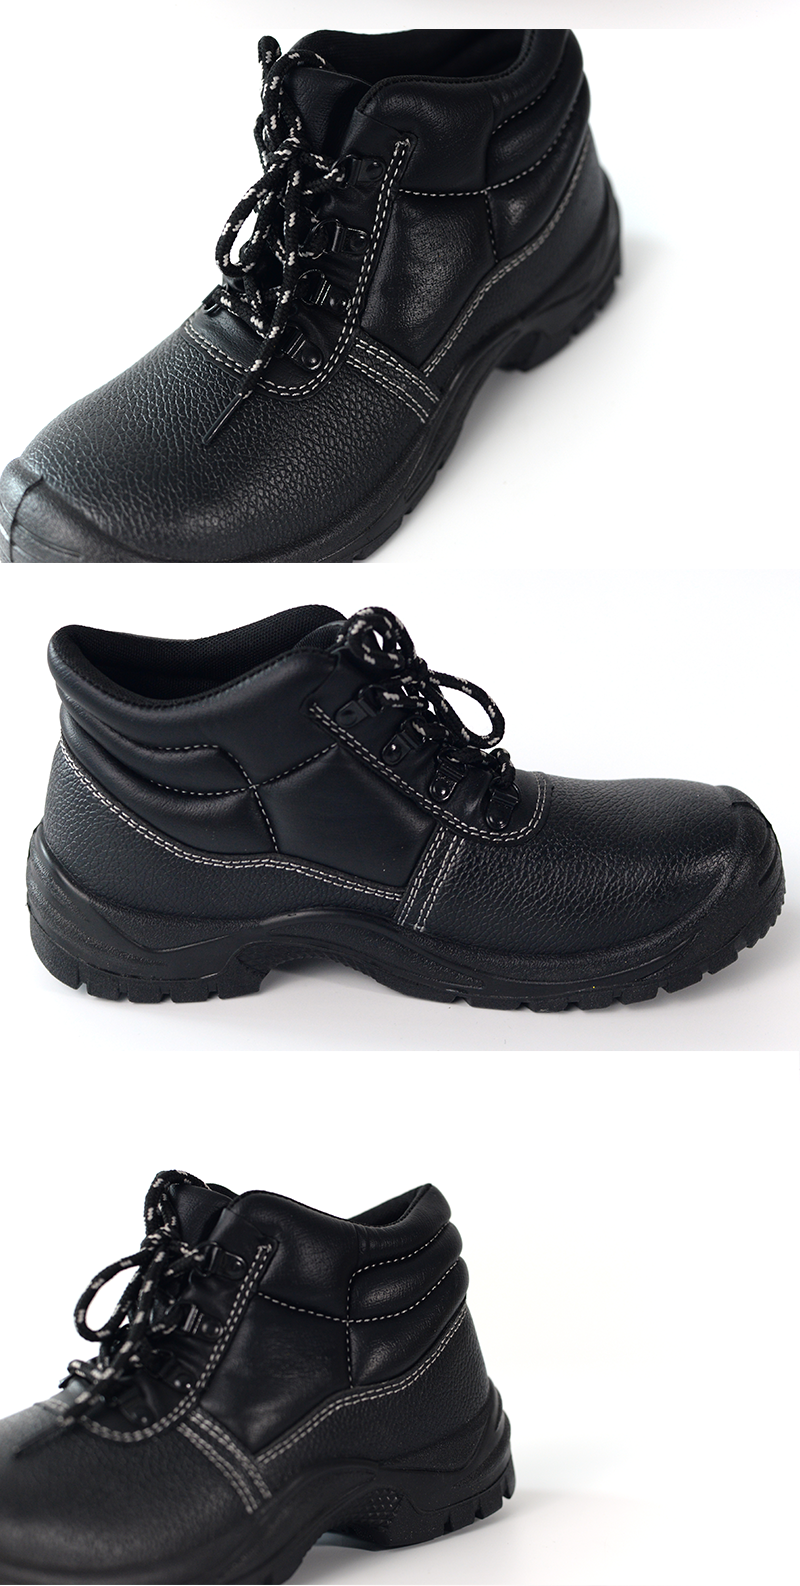 Anti-vibration genuine leather construction work shoes with steel toe cap steel toe safety shoes industrial boots safety shoes